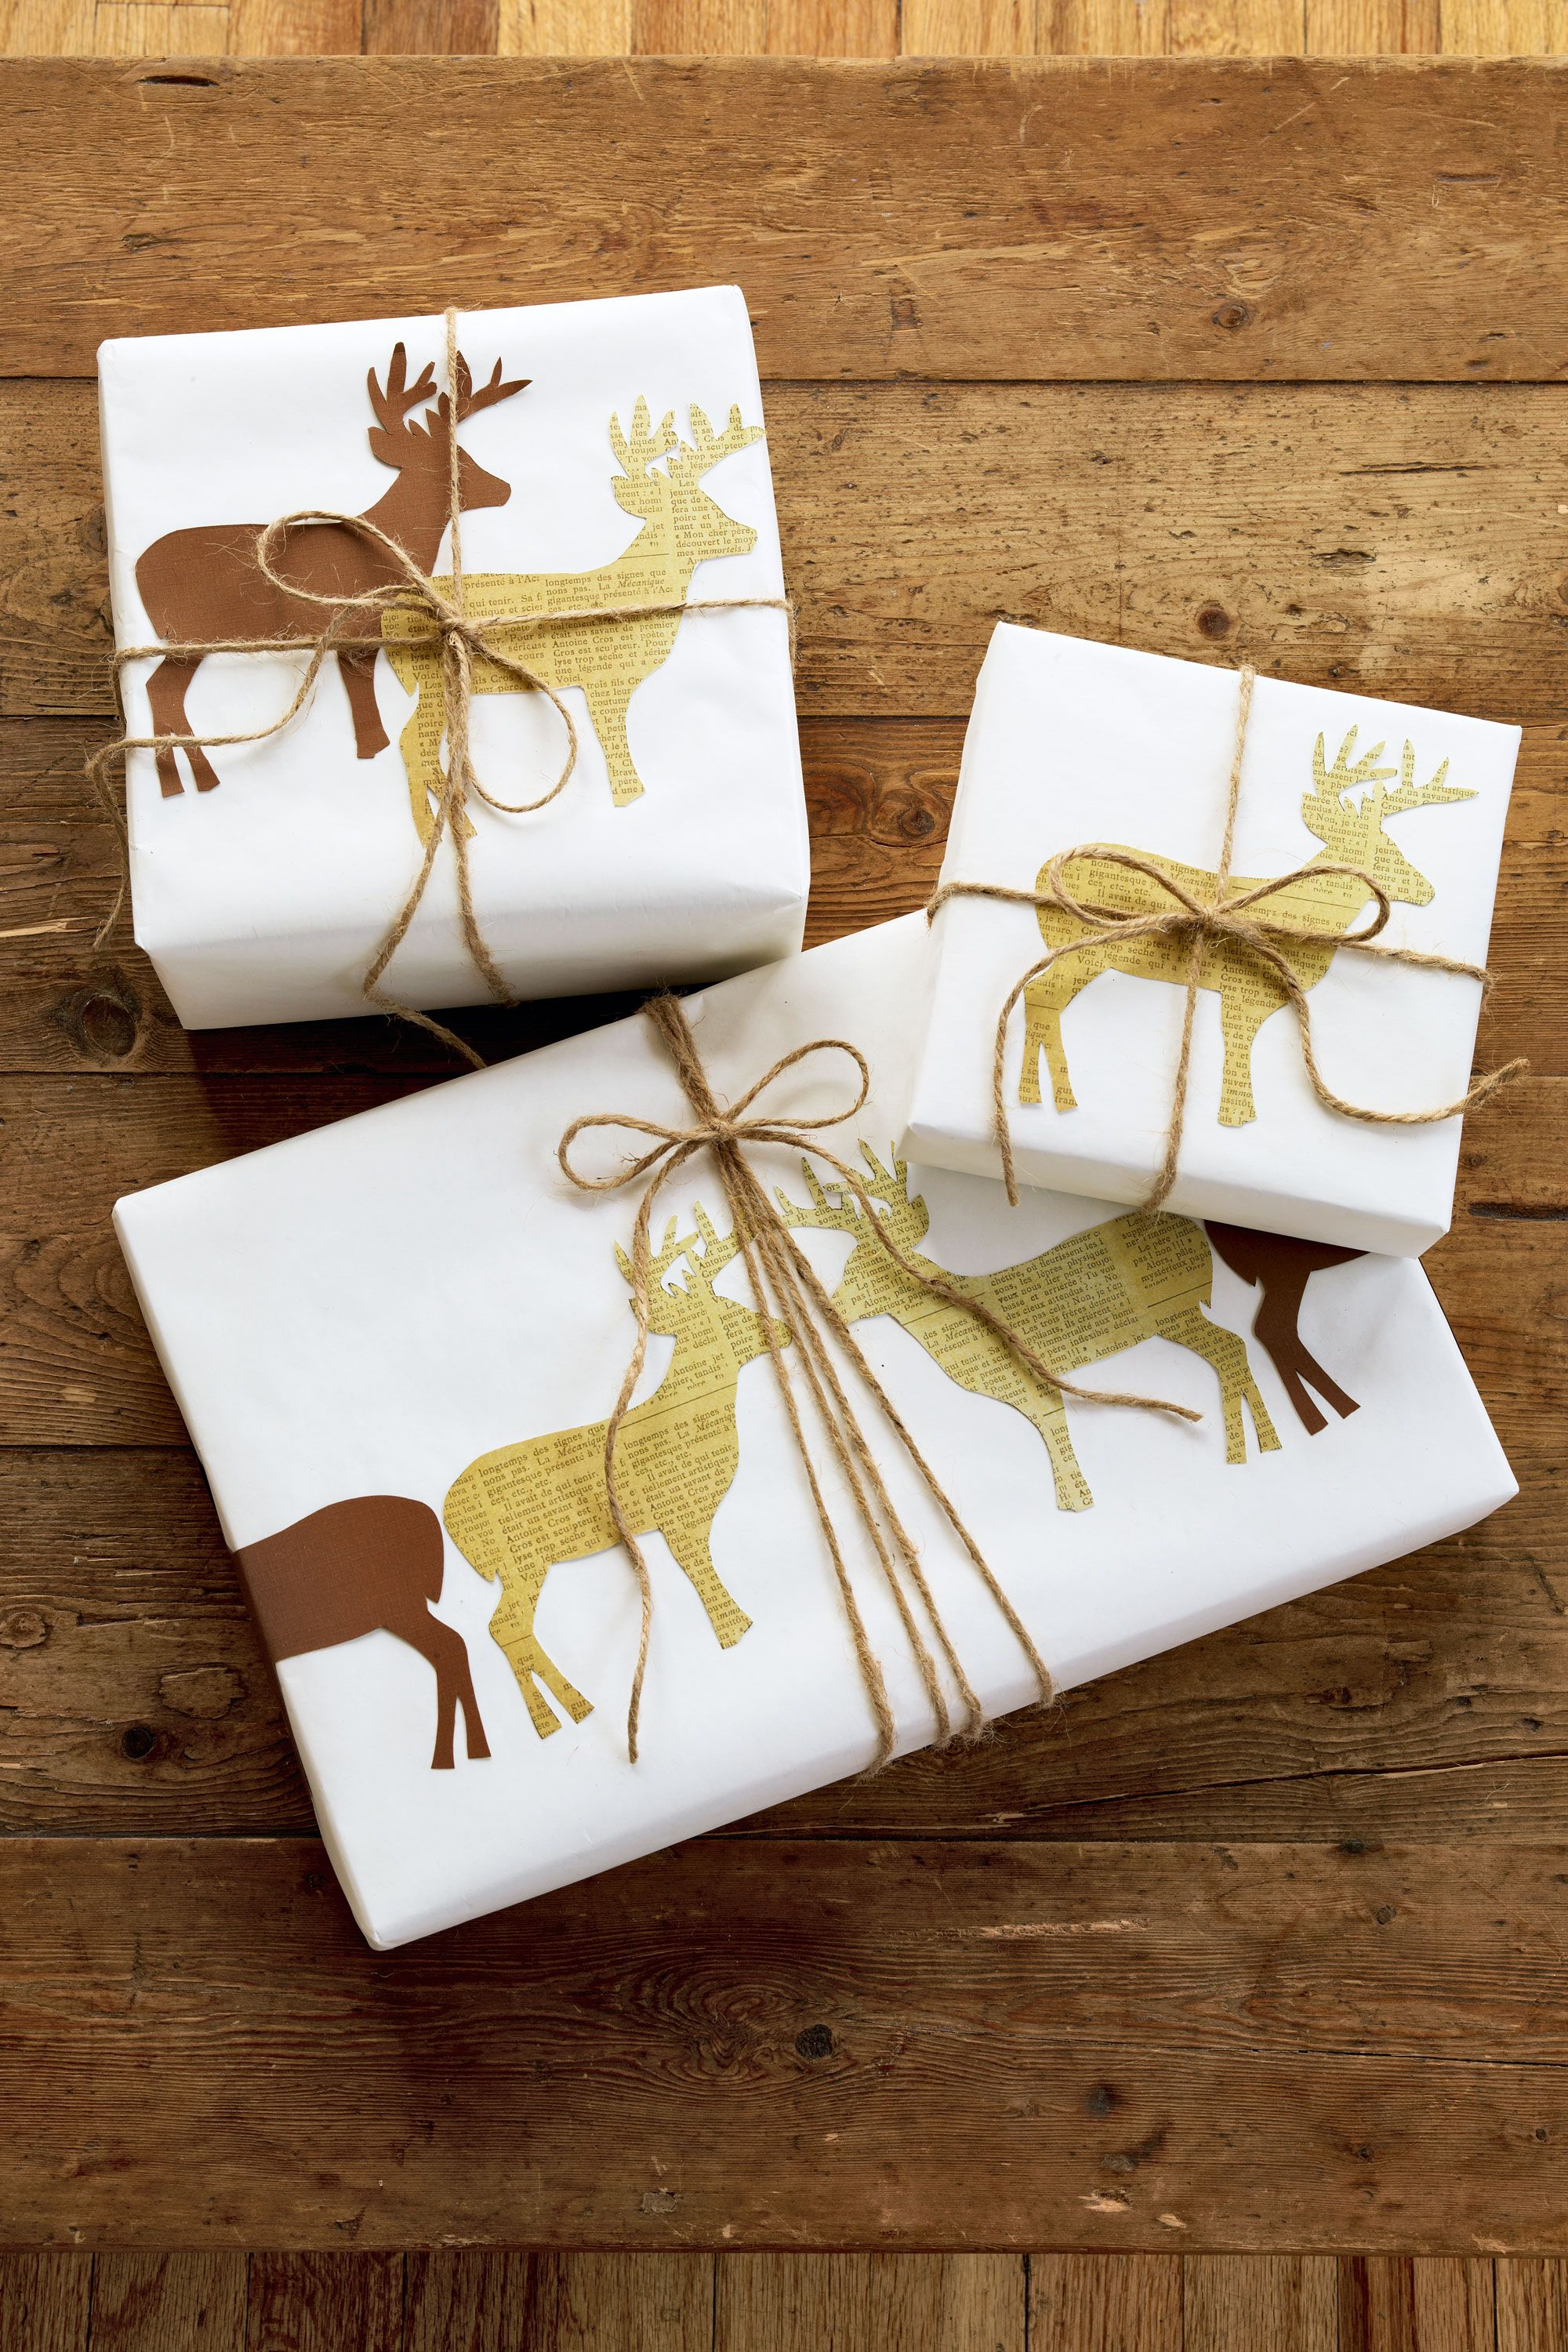 30 unique gift wrapping ideas for christmas how to wrap holiday 30 unique gift wrapping ideas for christmas how to wrap holiday presents kristyandbryce Gallery